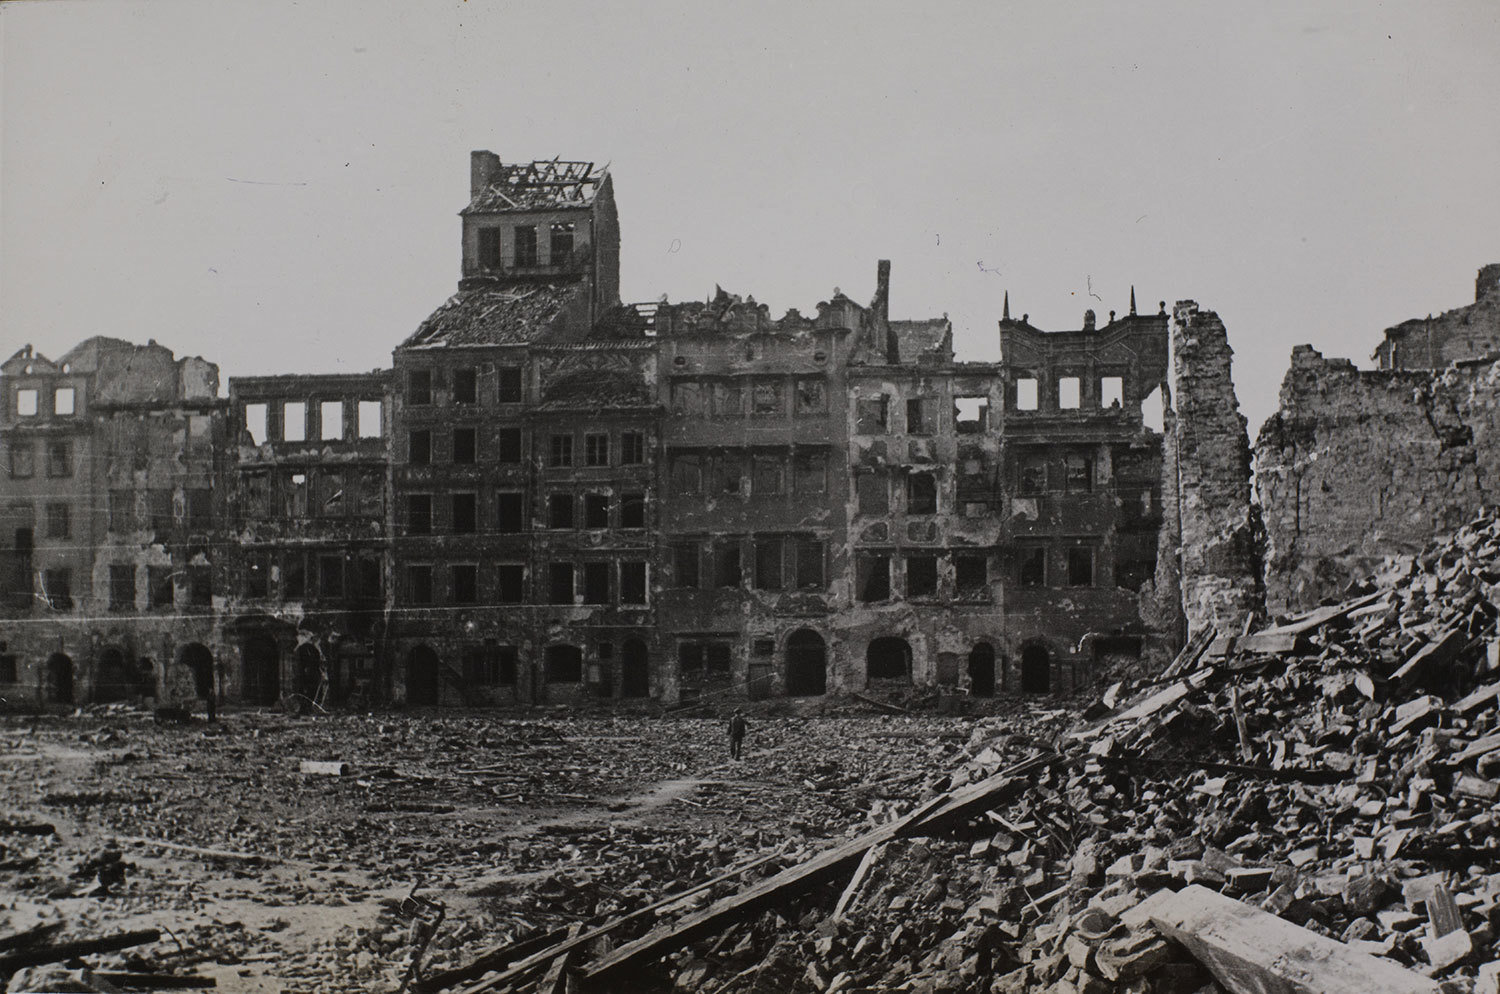 Ruins of Warsaw, 1939, unknown photographer, The Royal Library: The National Library of Denmark and Copenhagen University Library, CC BY-NC-ND